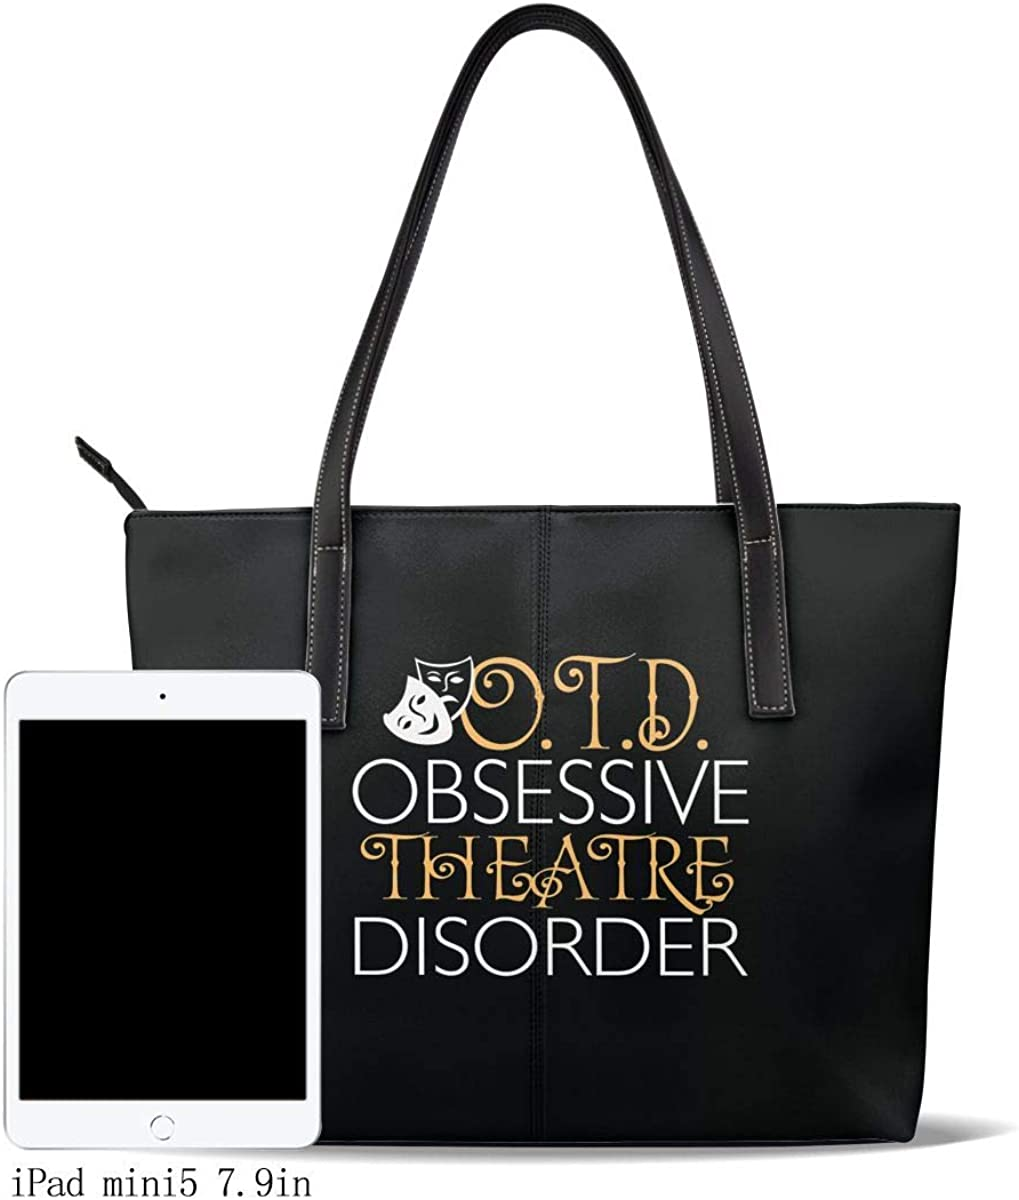 Vickcy OTD Obsessive Theatre Disorder Handbag,Women/'s Made Of Fine Leather Shoulder Tote Bag Fashion Big Capacity Crossbody.